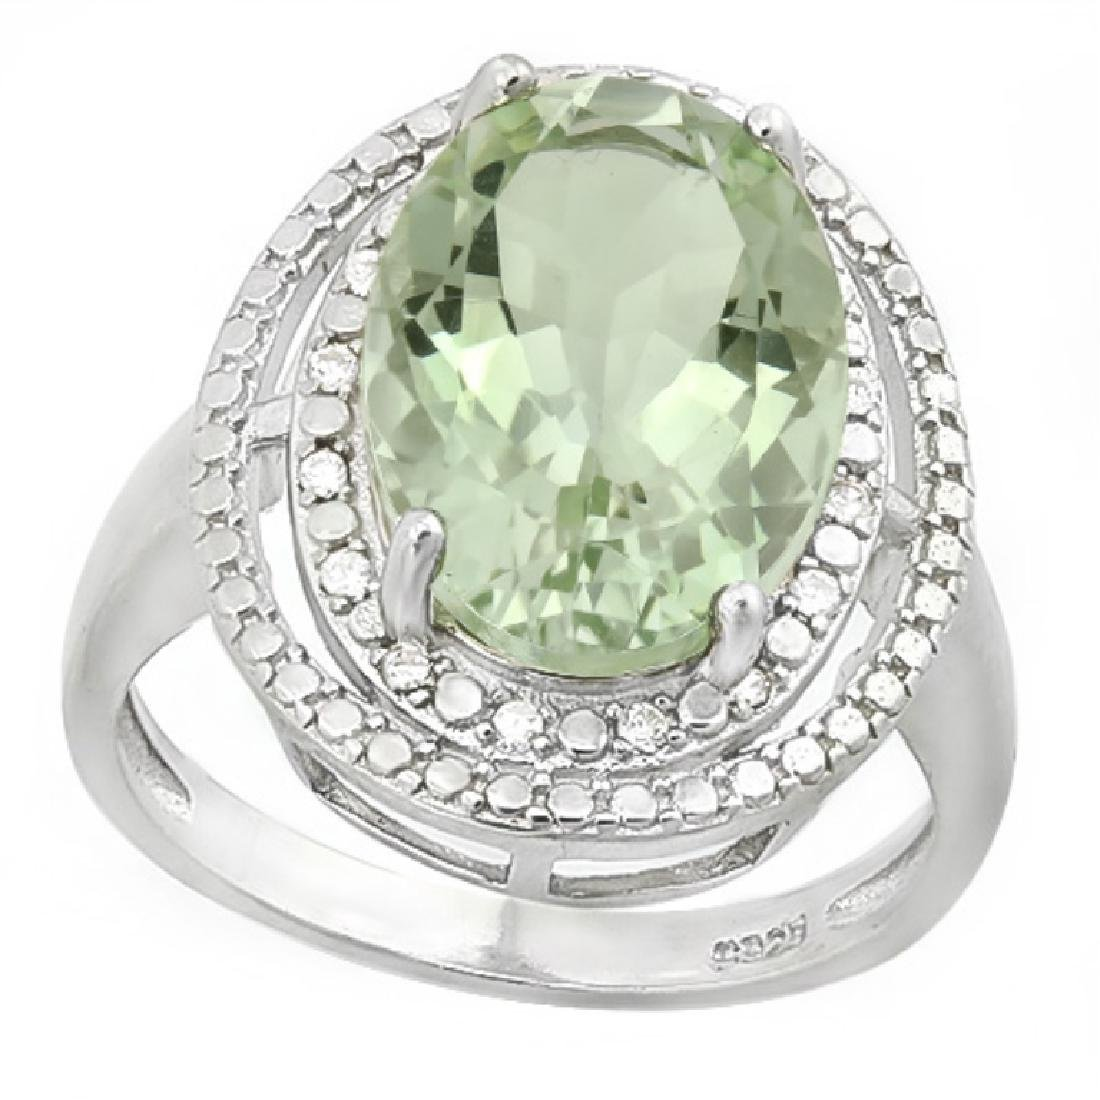 HUGE 6CT GREEN AMETHYST OVAL ART DECO RING